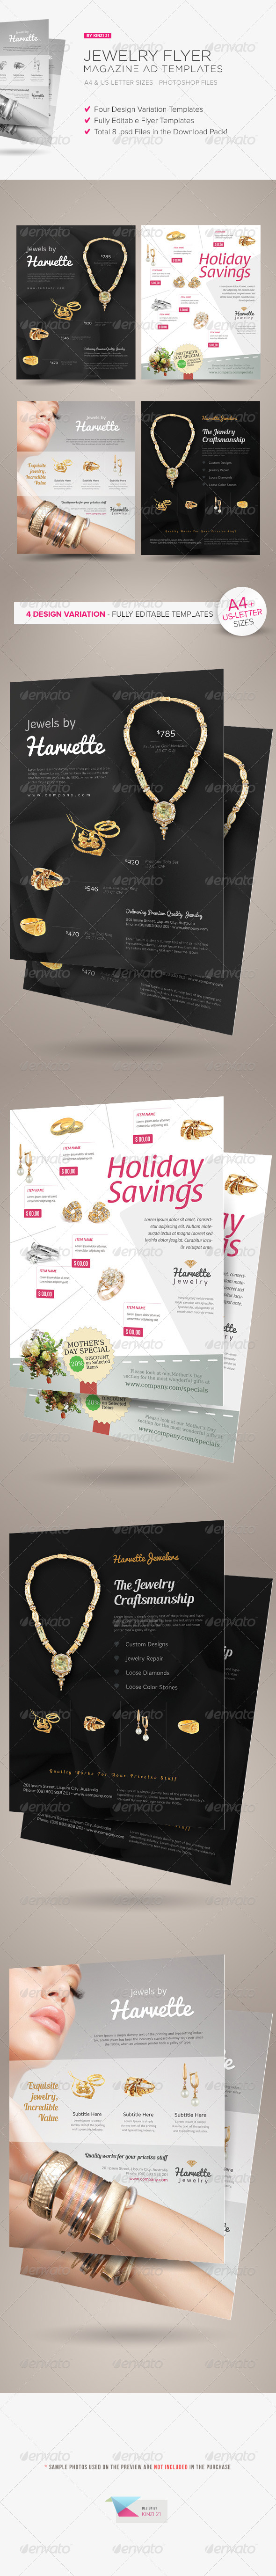 Jewelry Flyer or Magazine Ad Templates - Corporate Flyers